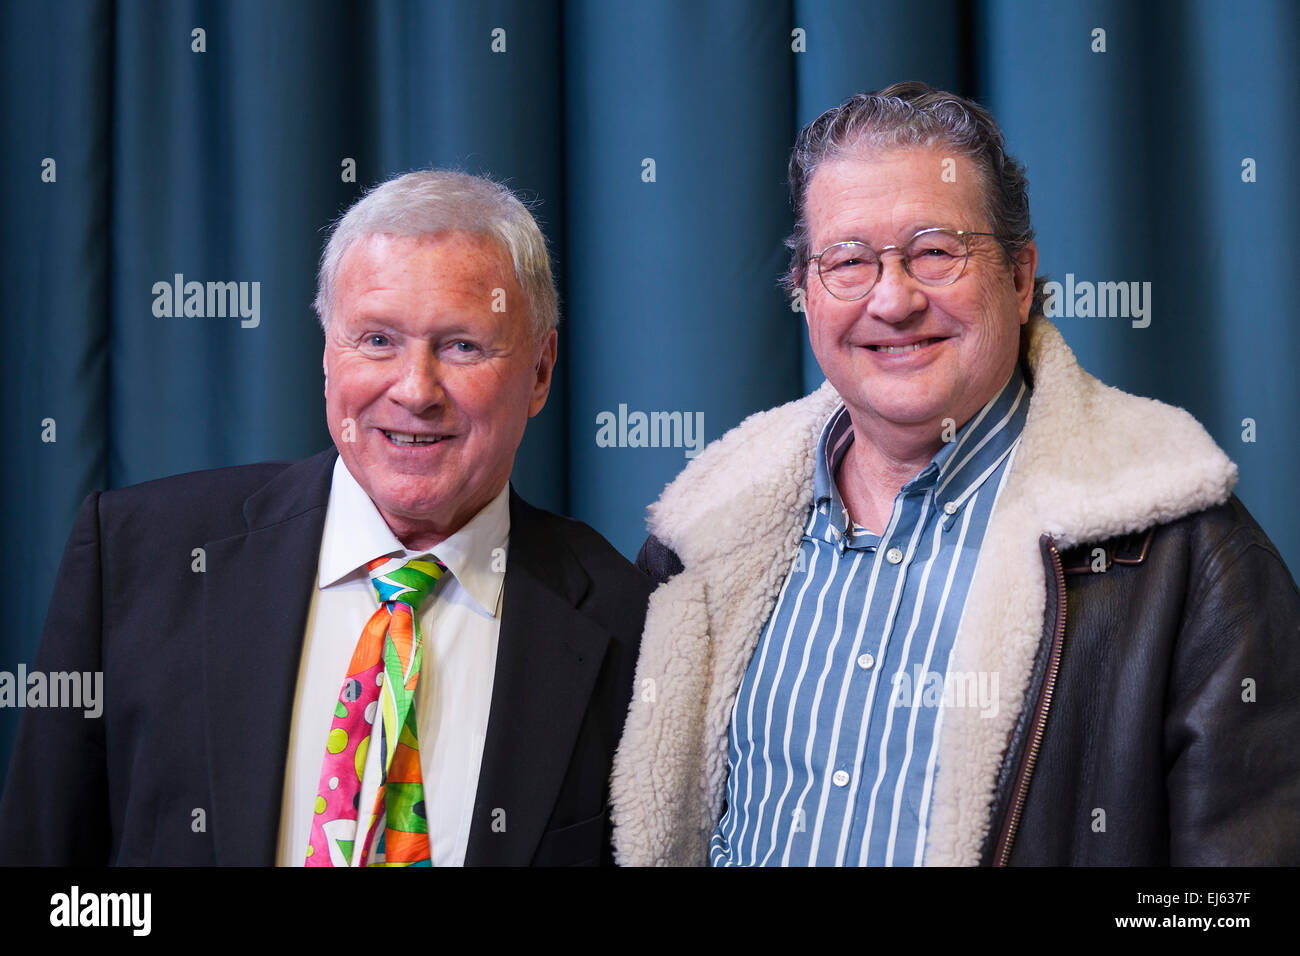 Walsall, West Midlands, UK. 22 March 2015. David Hamilton (L) with Clive Doig British television producer director - Stock Image